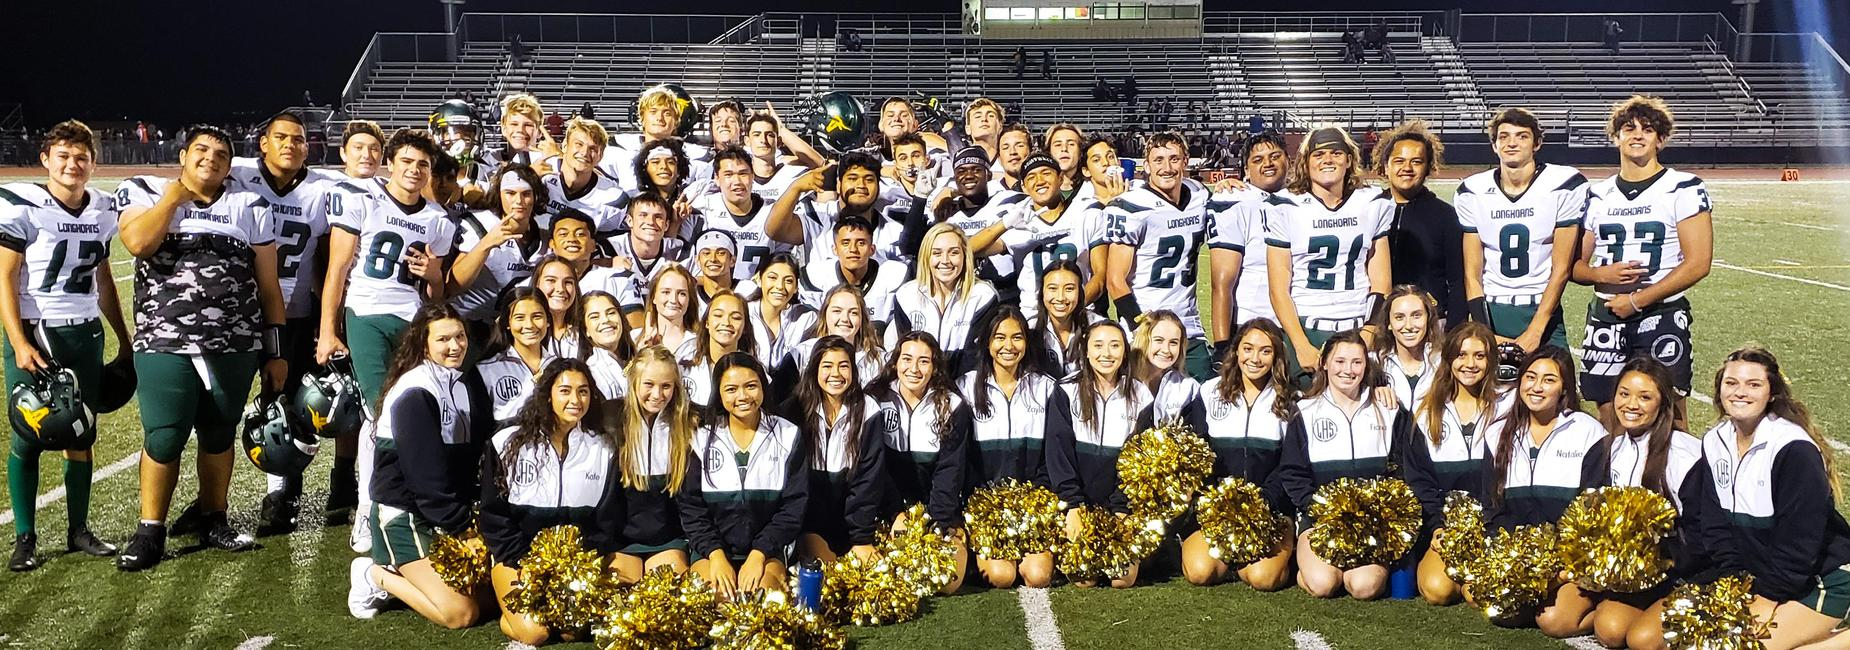 Football team and cheerleaders posing on the field after the first game of the 2019 season